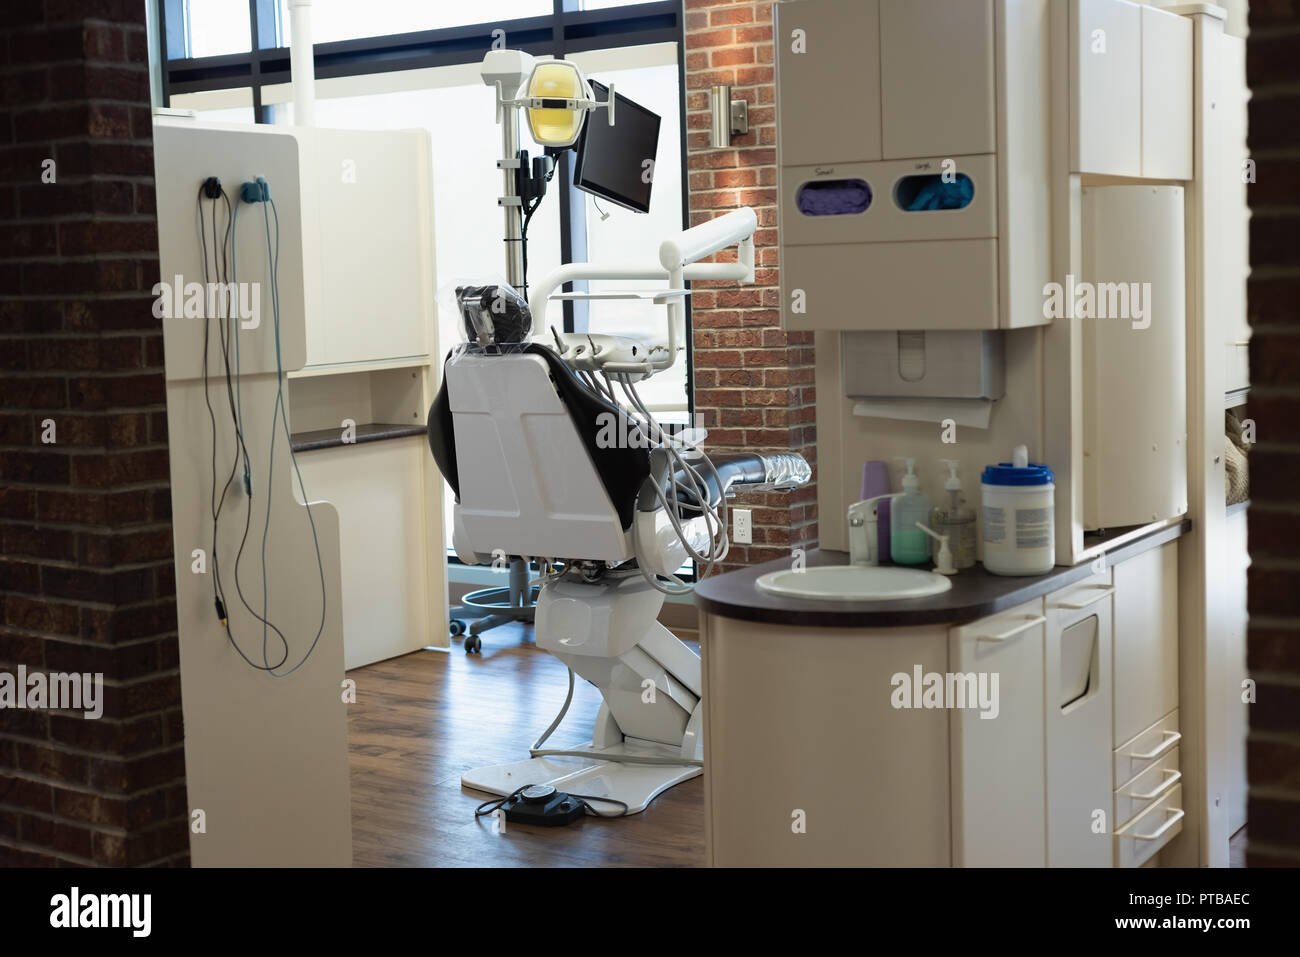 Professional dentistry chair in dental clinic - Stock Image